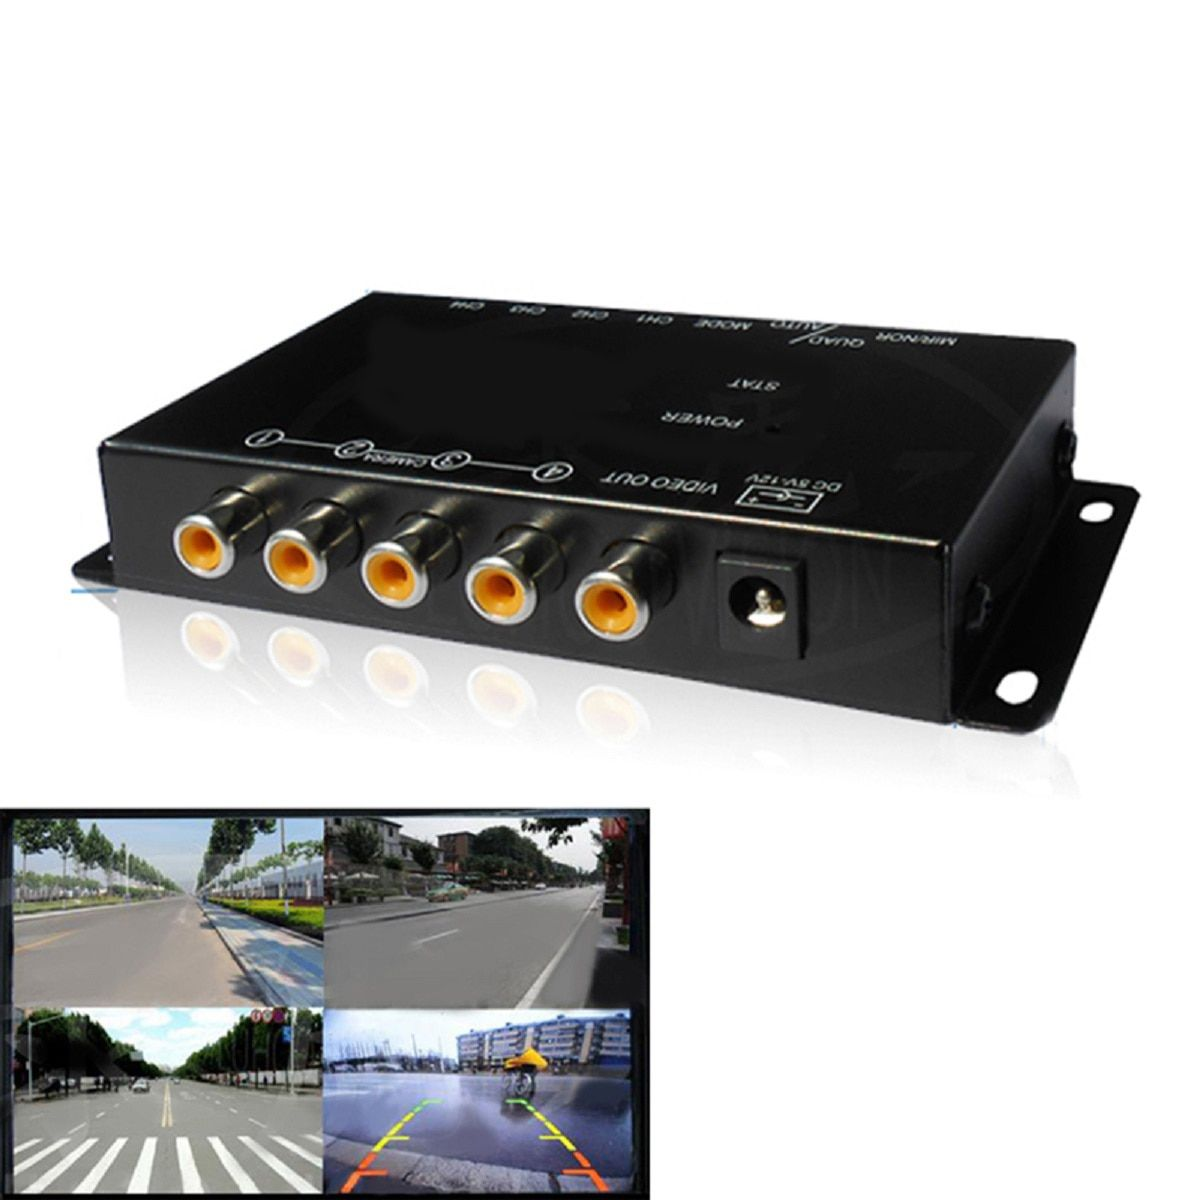 IR control 4 Cameras Video Control Car Cameras Image Switch Combiner Box for Left view Right view Front Rear Parking Camera box